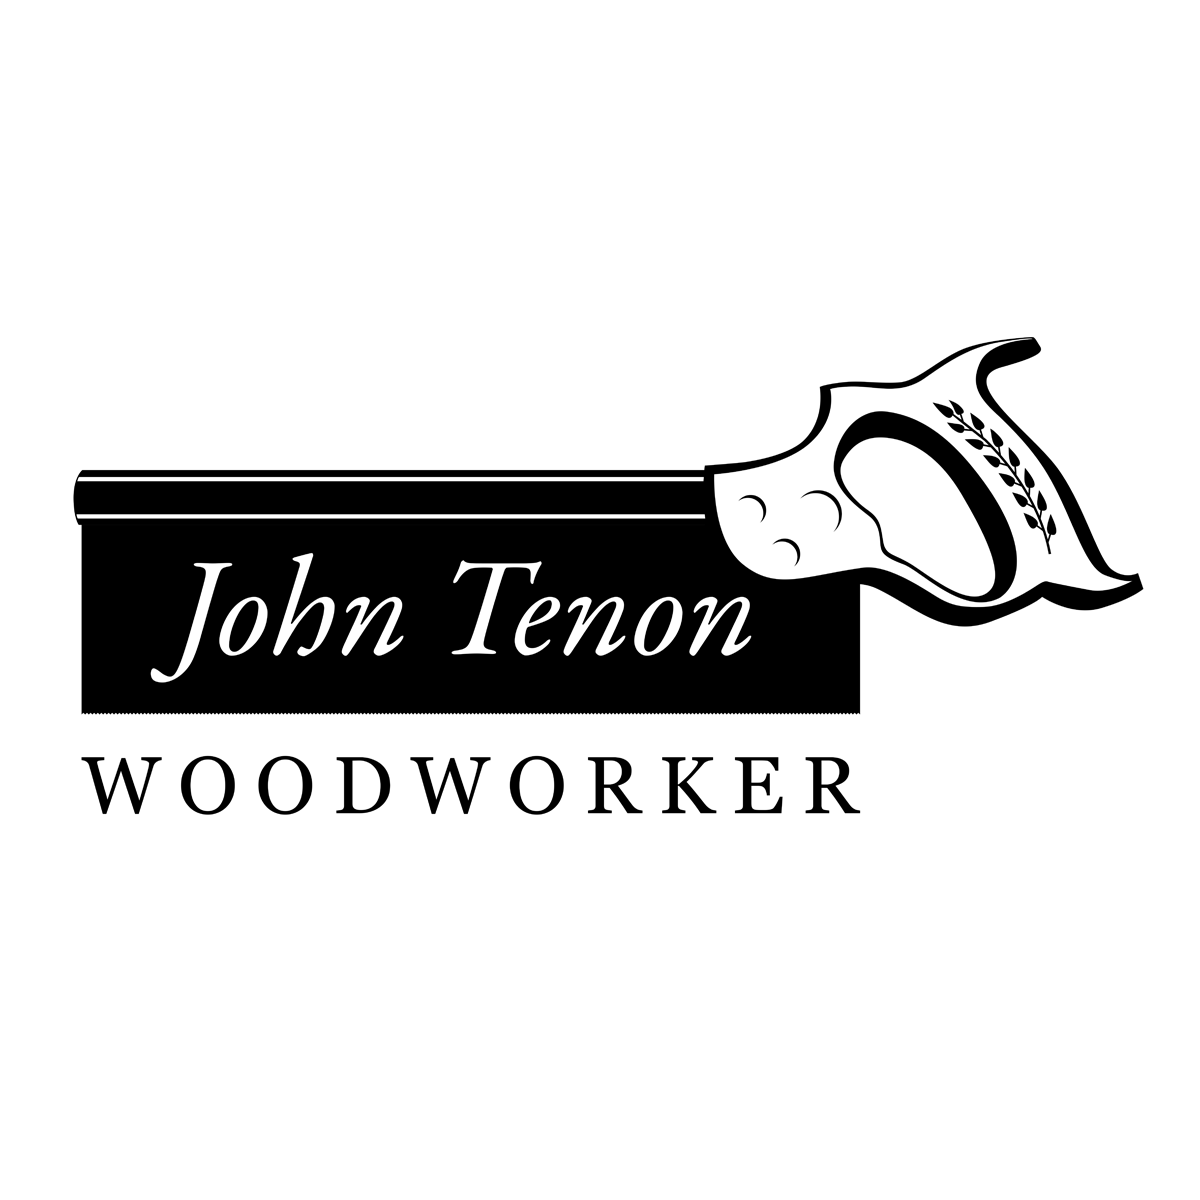 John Tenon Traditional Woodworker Logo - logo design by PixelDuck